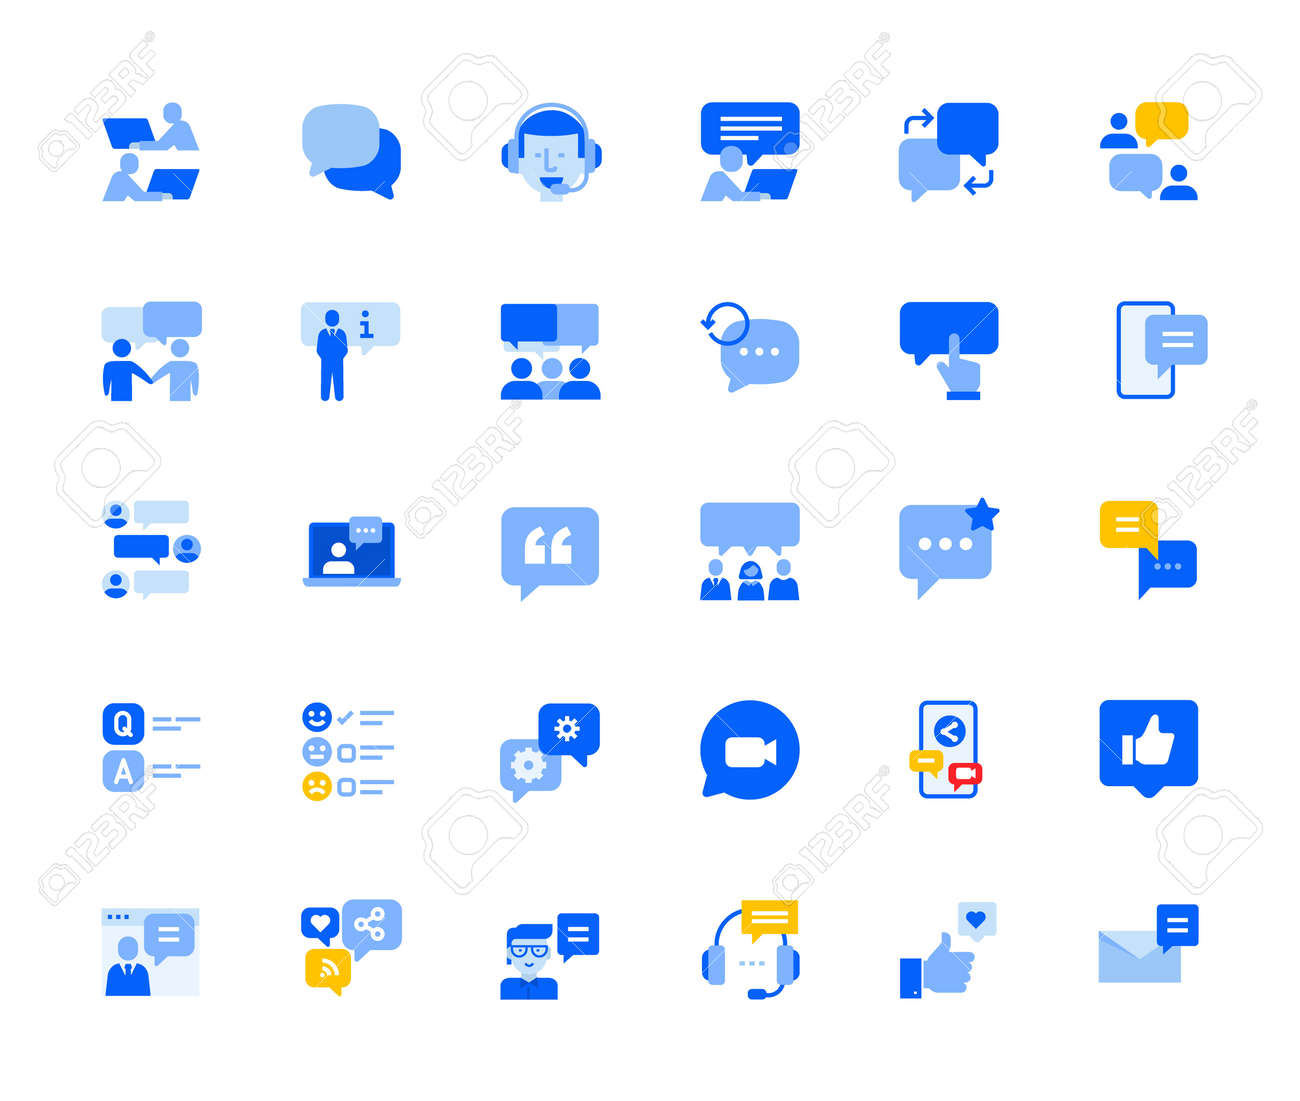 Online communication and networking icons set for personal and business use. - 168285555